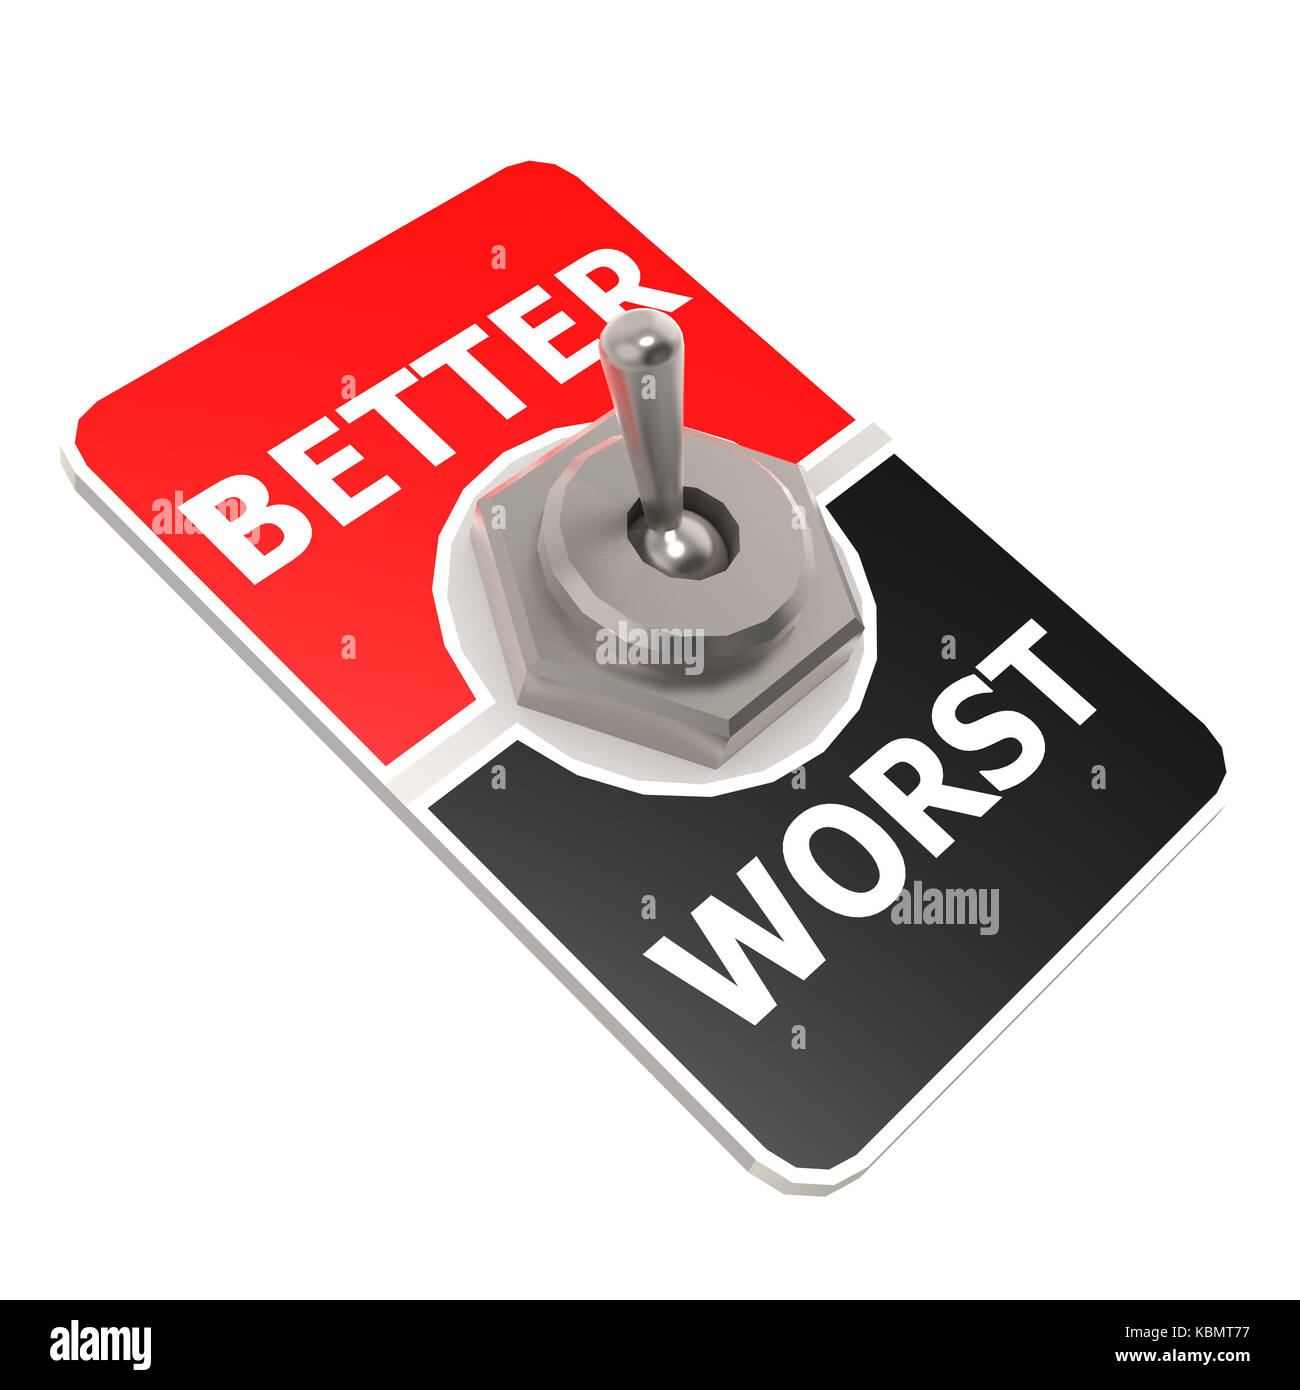 Worst better toggle switch image with hi-res rendered artwork that could be used for any graphic design. - Stock Image